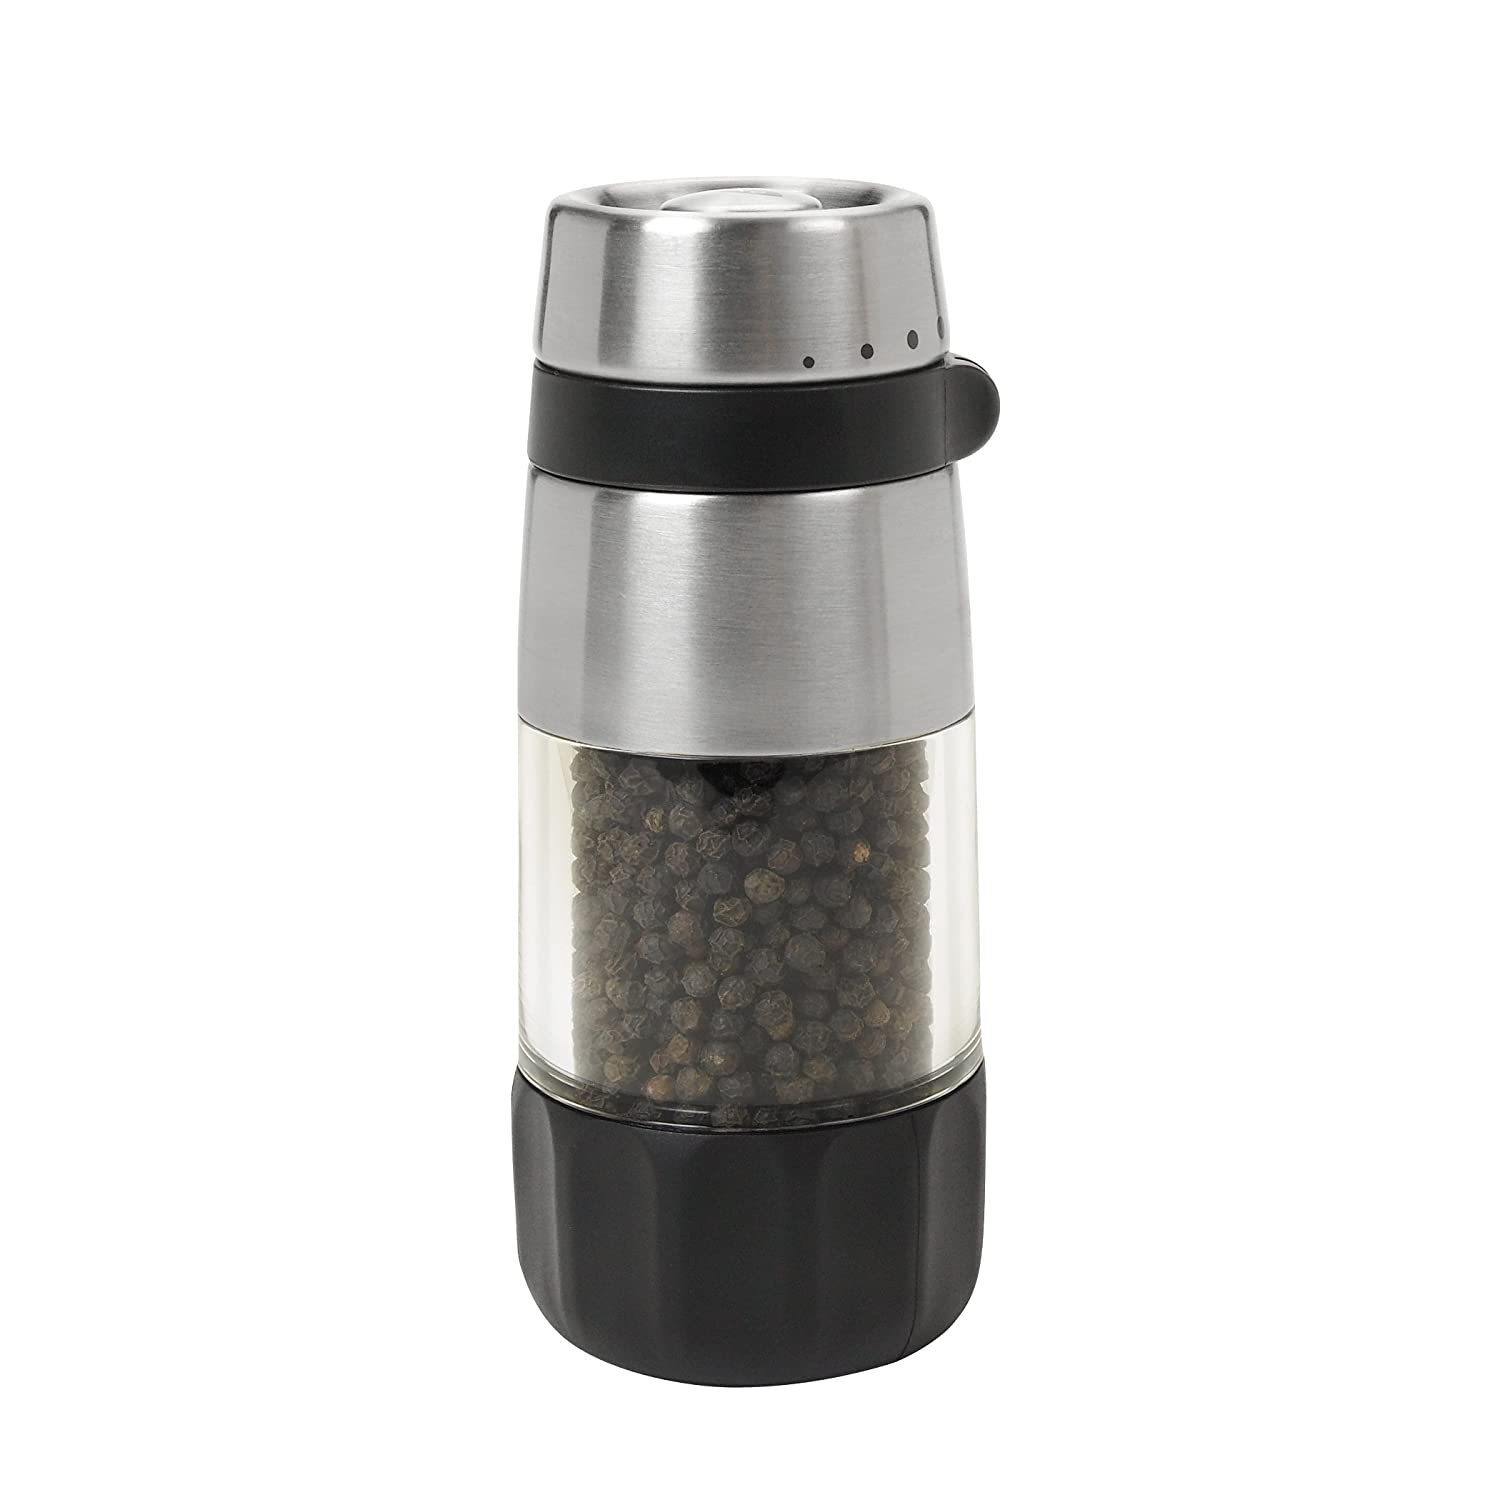 OXO Good Grips 1140700BK Pepper Grinder (Silver)